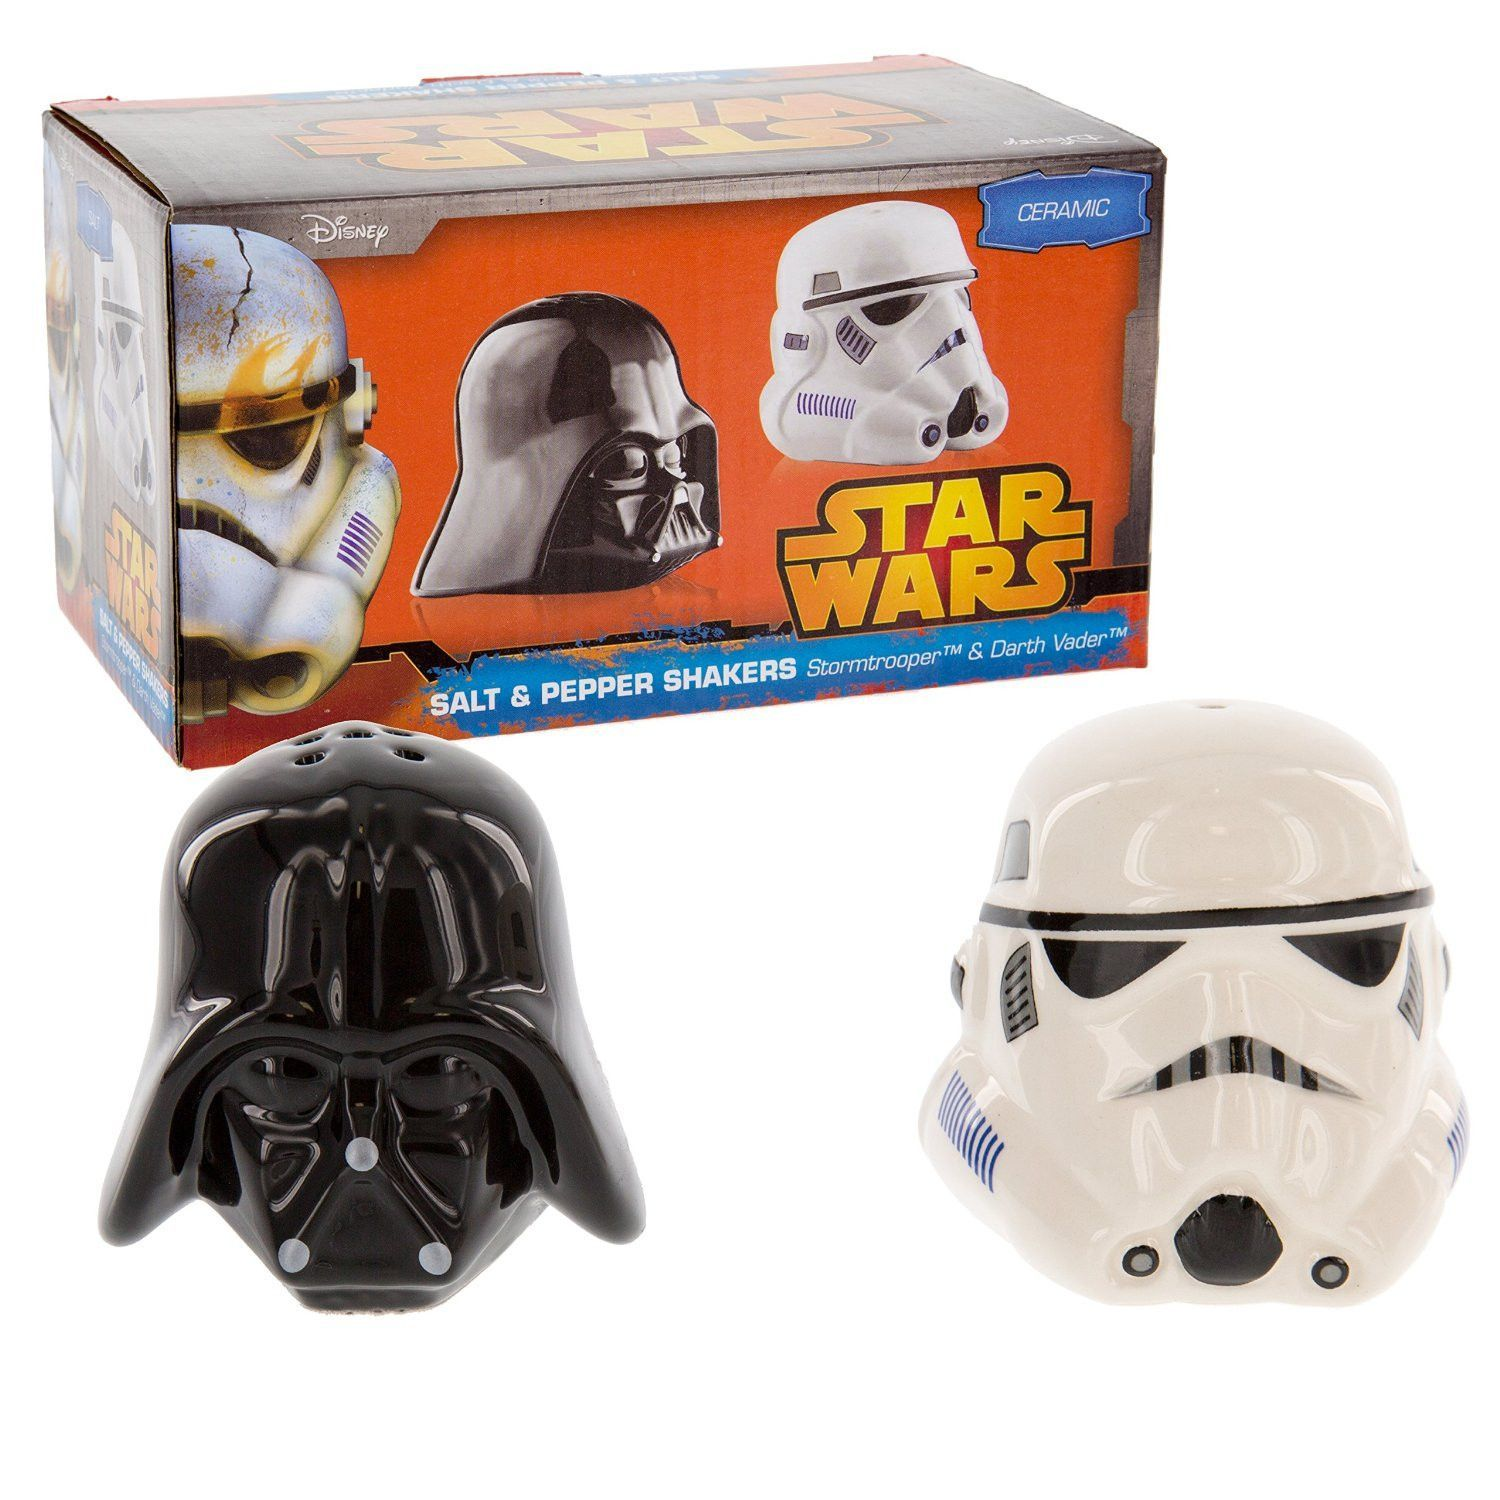 Star Wars Küchenutensilien Star Wars Salt Pepper Shakers Darth Vader Stormtrooper Salt